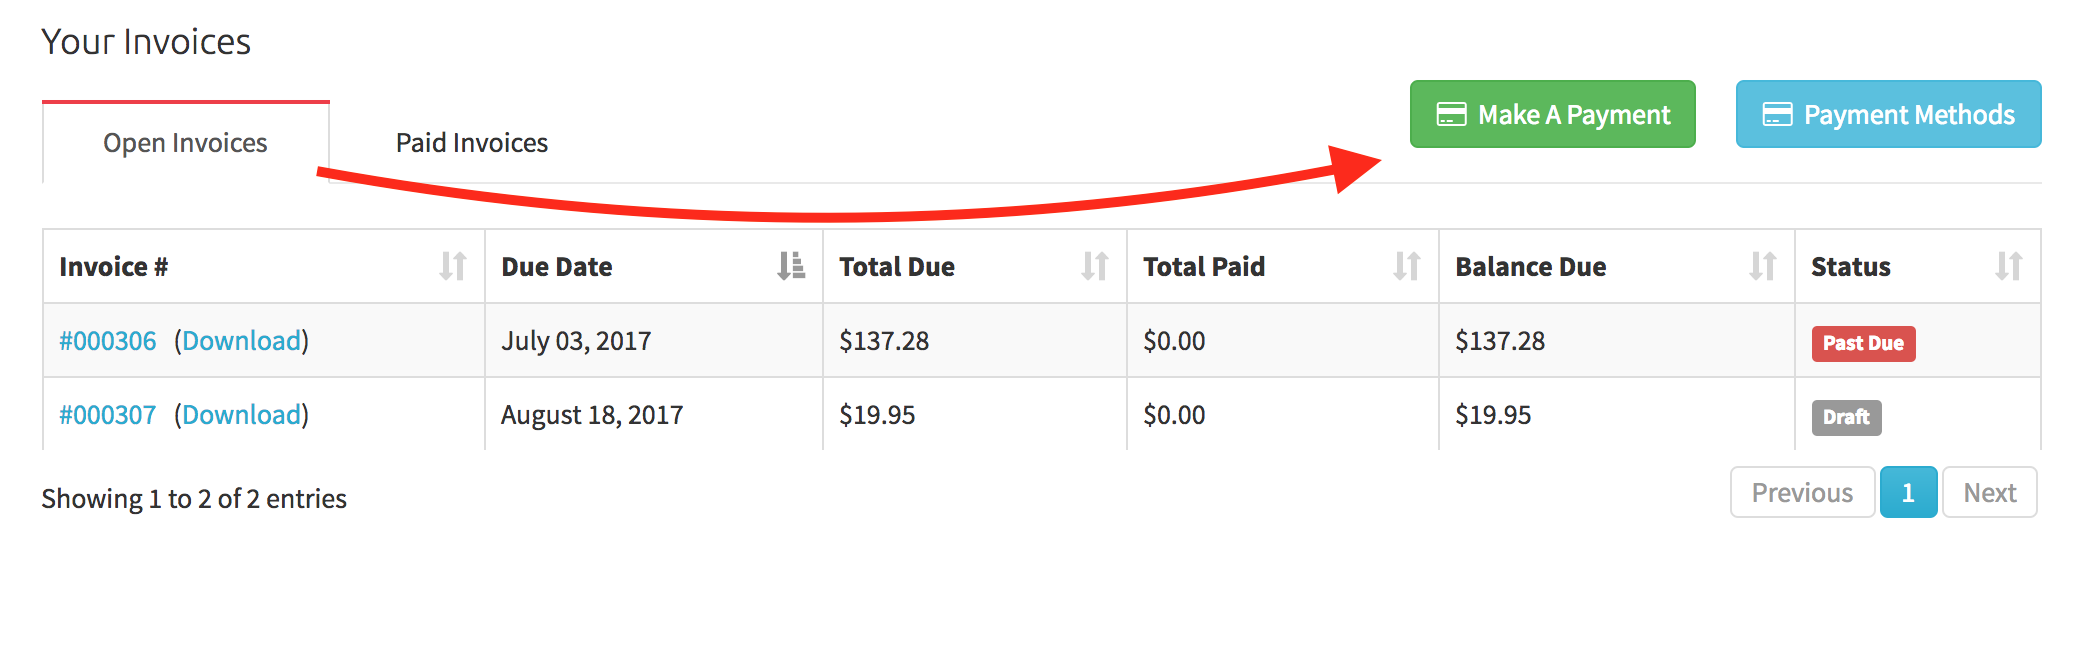 """View of the """"Make A Payment"""" button in client portal"""